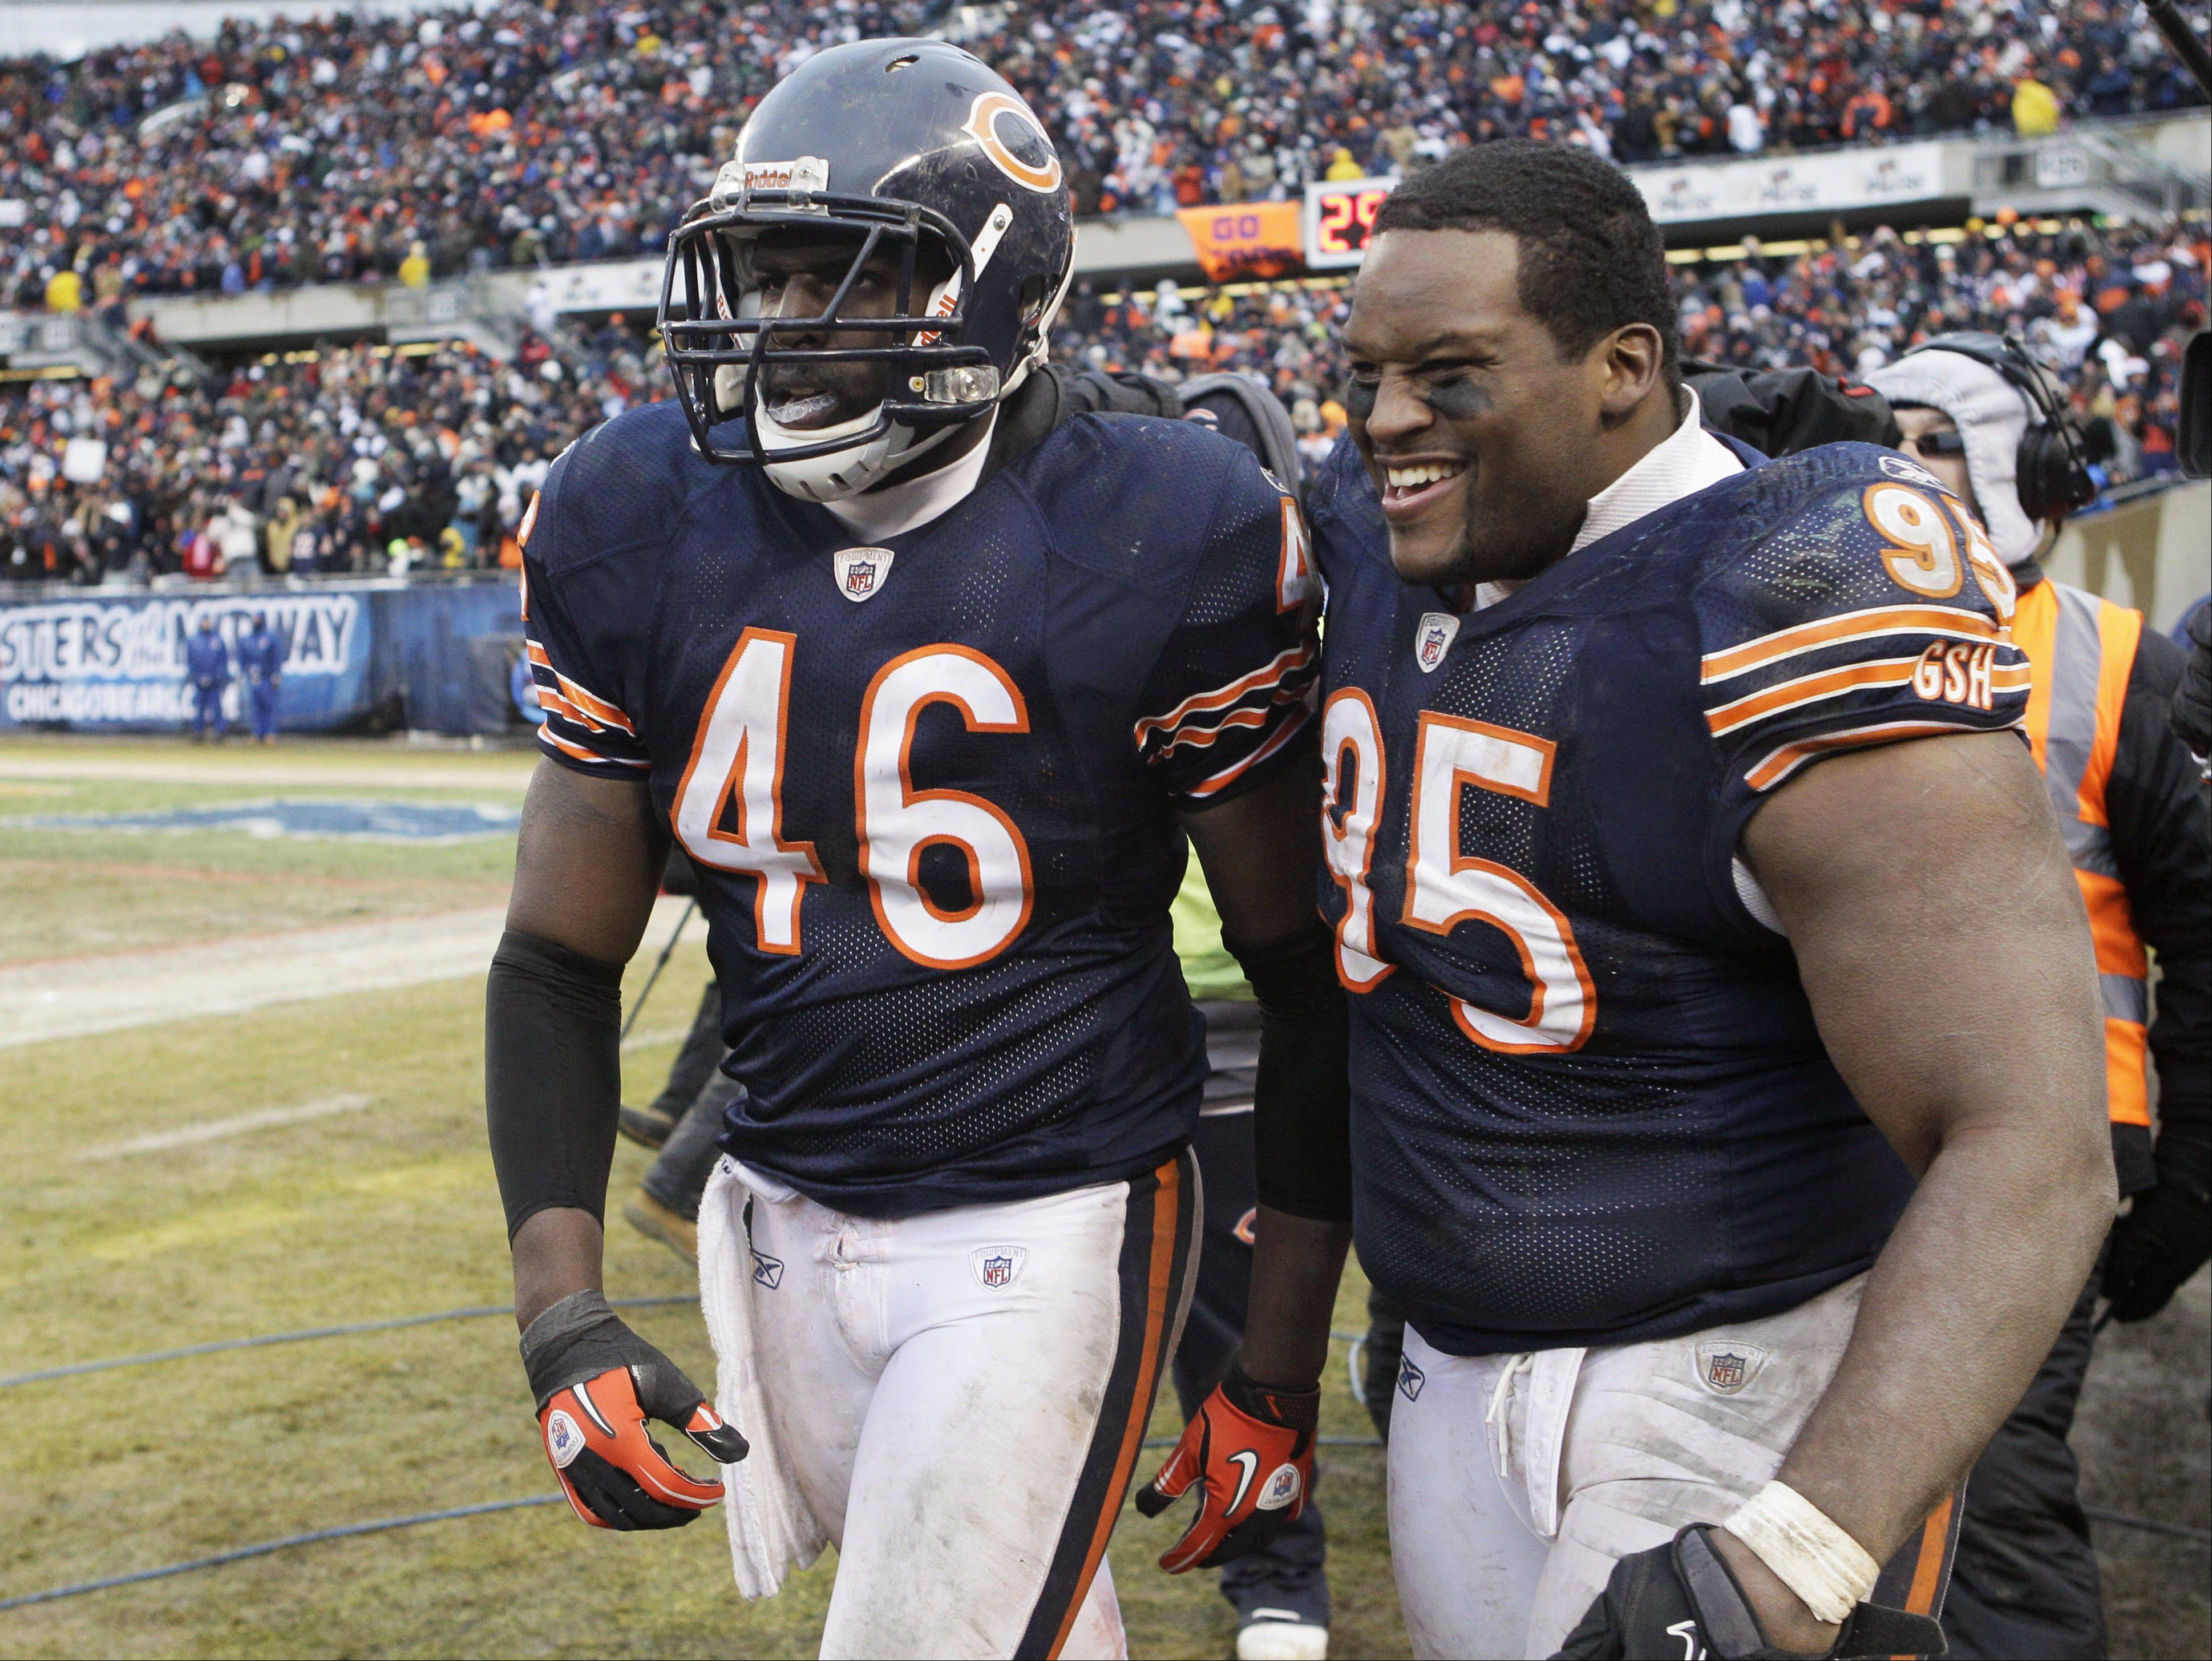 Chicago Bears safety Chris Harris (46) celebrates with Anthony Adams (95) after Harris� interception late in the NFL football game against the New York Jets on Sunday, Dec. 26, 2010, in Chicago. The Bears won 38-34.